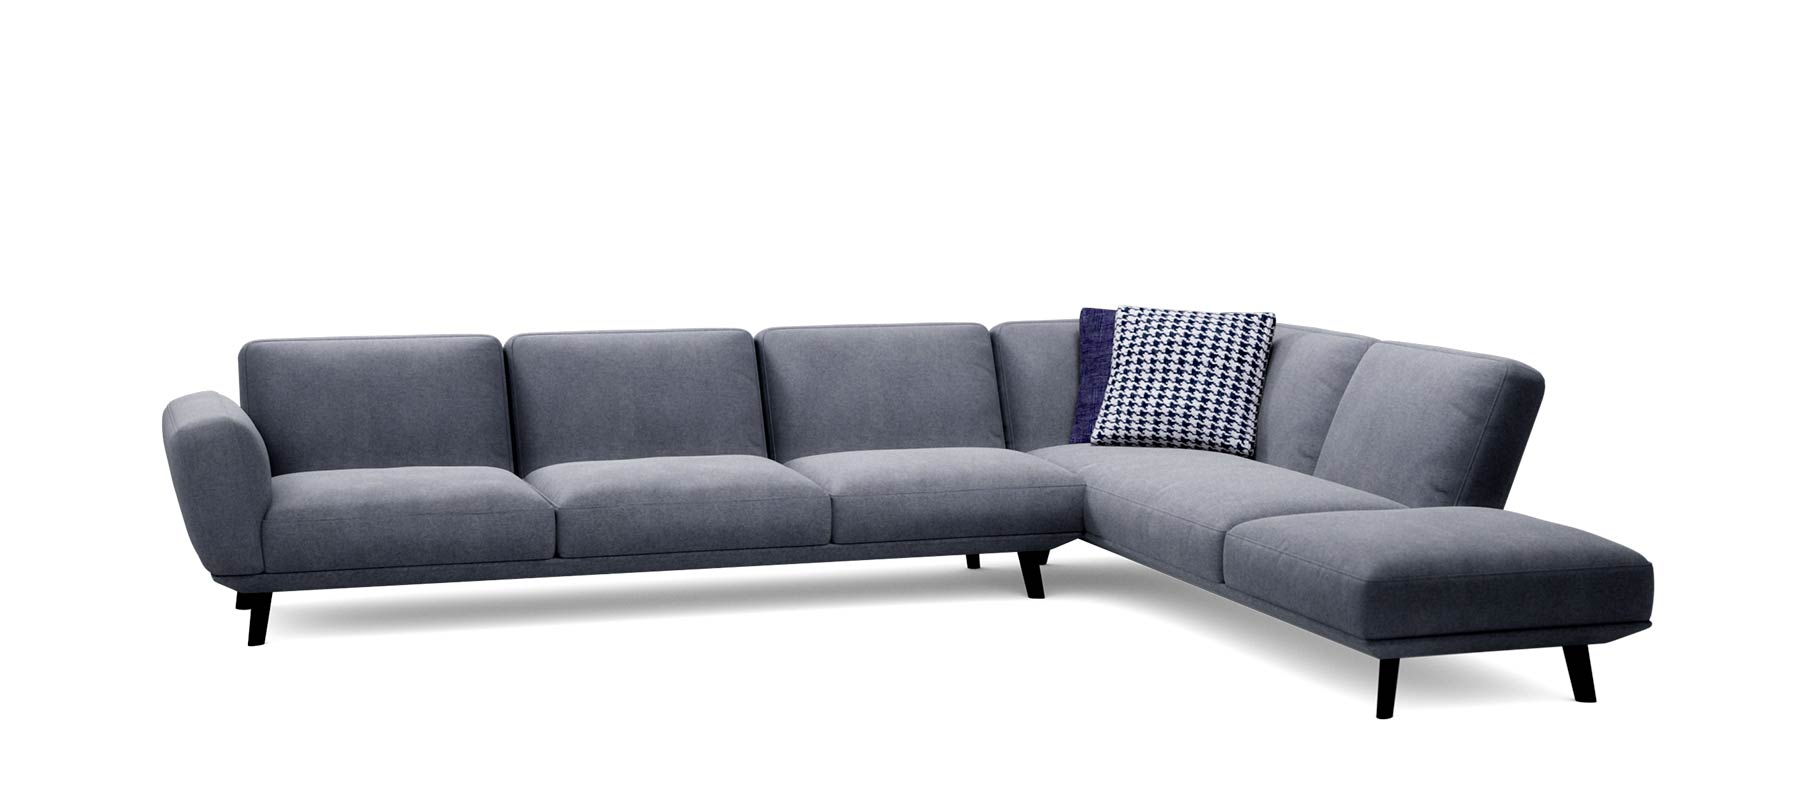 Neo Modular Sofa Award Winning Design Lounge Couch King Living